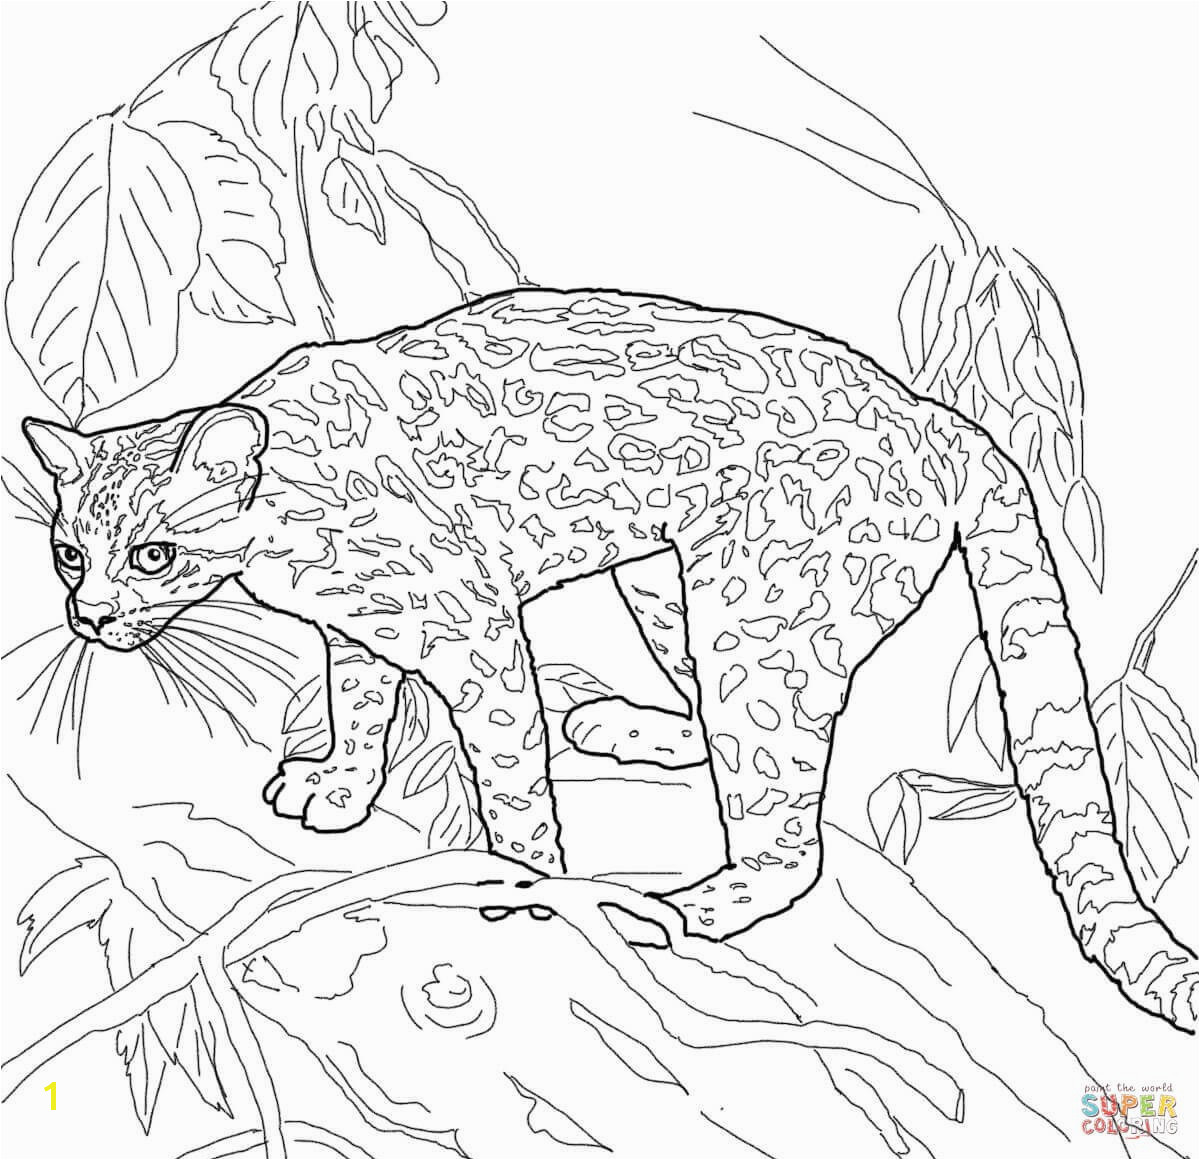 the rich fool coloring page parable of the rich fool coloring page divyajananiorg fool coloring the page rich